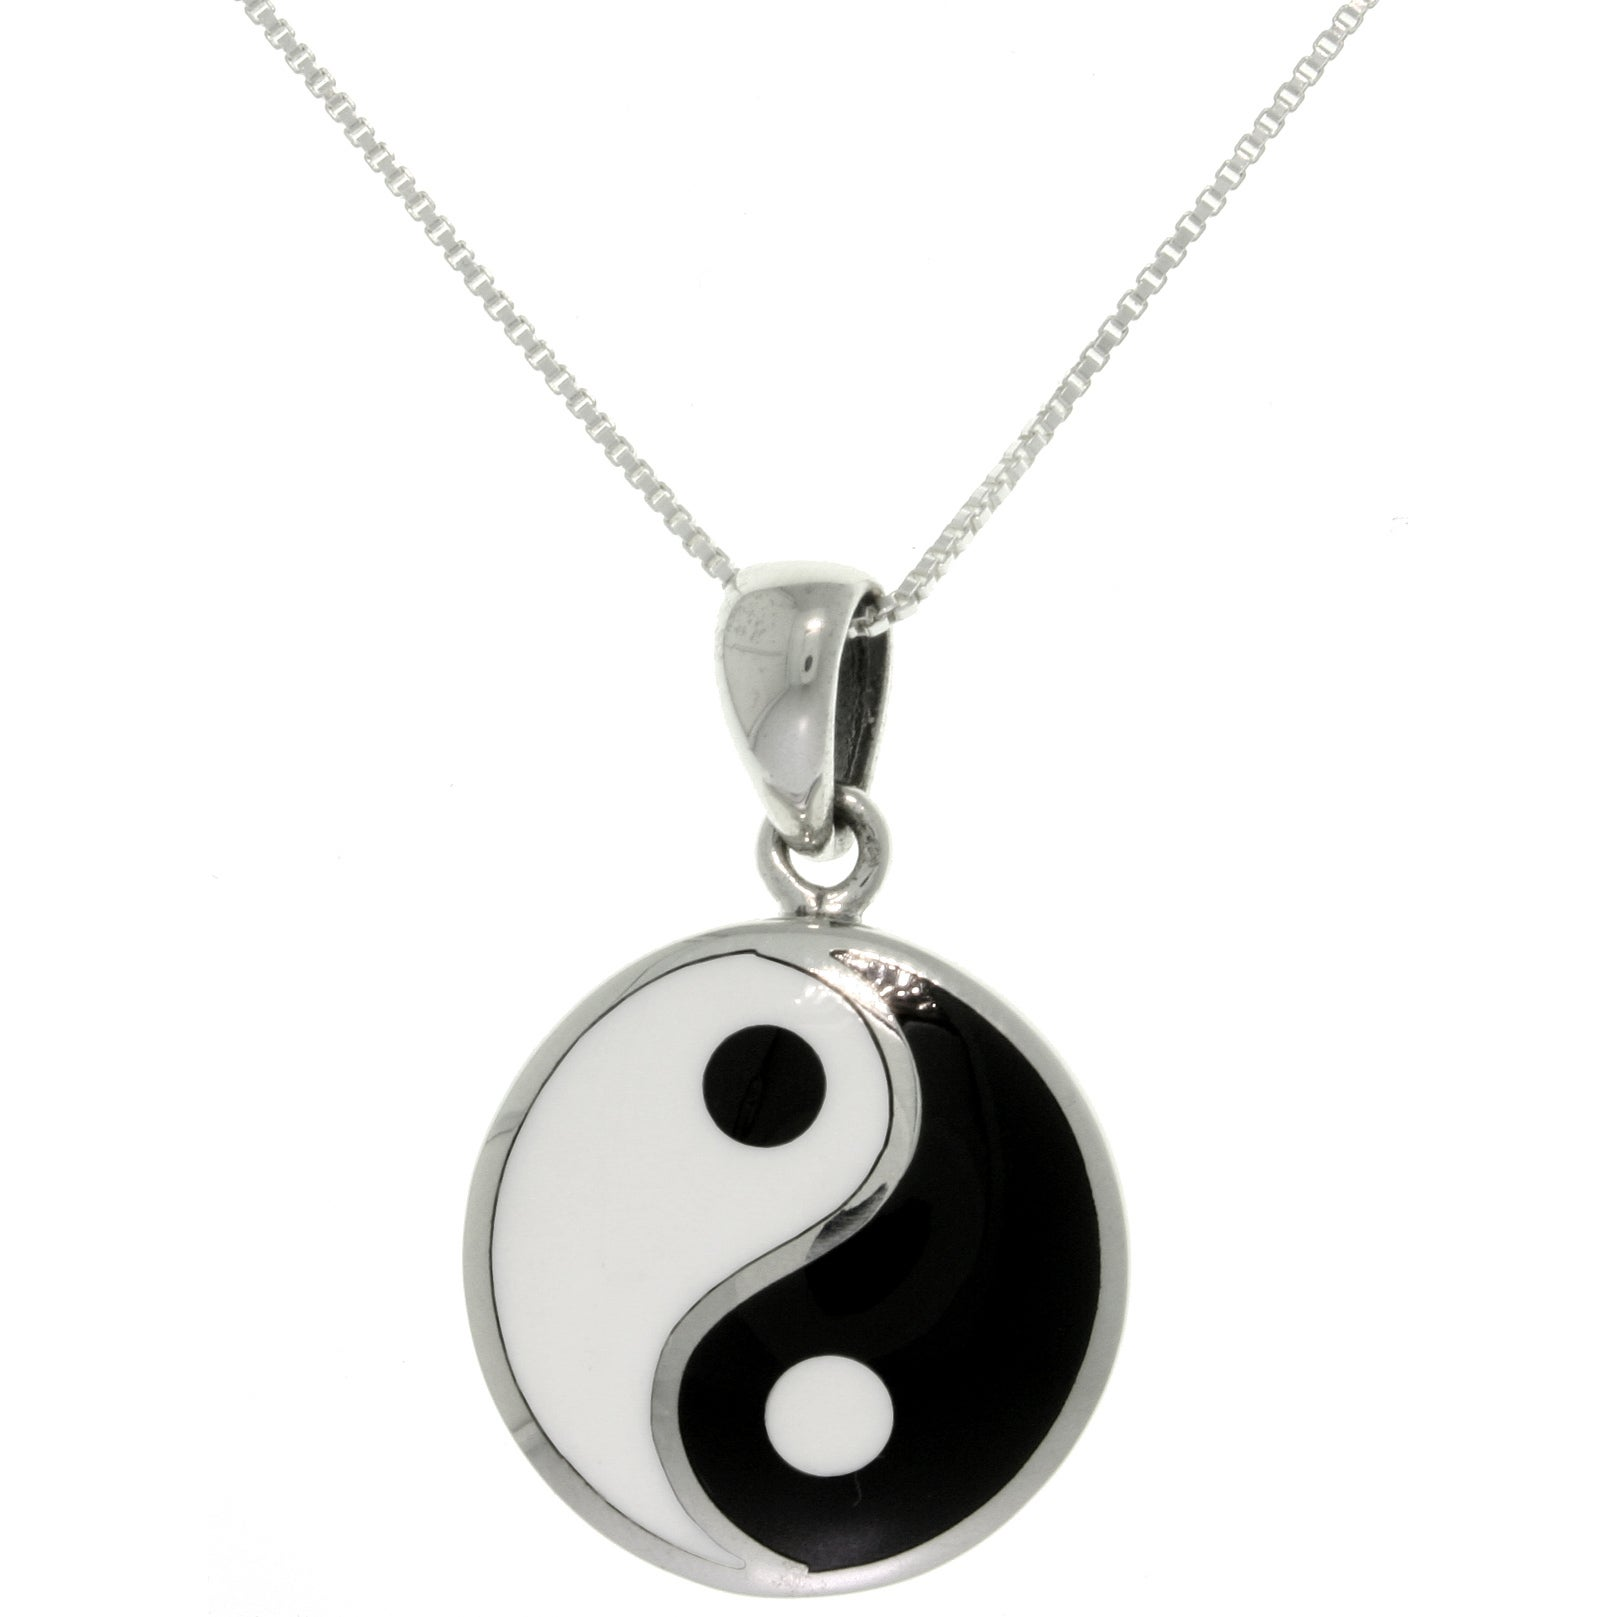 Sterling silver yin yang necklace free shipping on orders over 45 sterling silver yin yang necklace free shipping on orders over 45 overstock 14786504 aloadofball Images